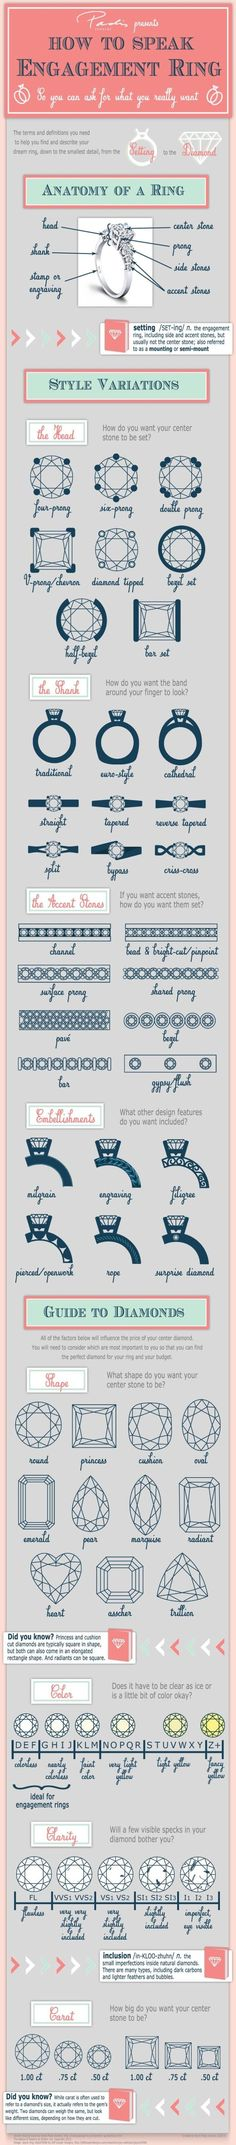 #Infographic @ #WeddingPlanning Curious to know the difference between a tapered ring and a bypass ring? Not sure what a Euro-style looks like? Then you'll definitely want to keep this helpful infographic handy. Photo via Padis